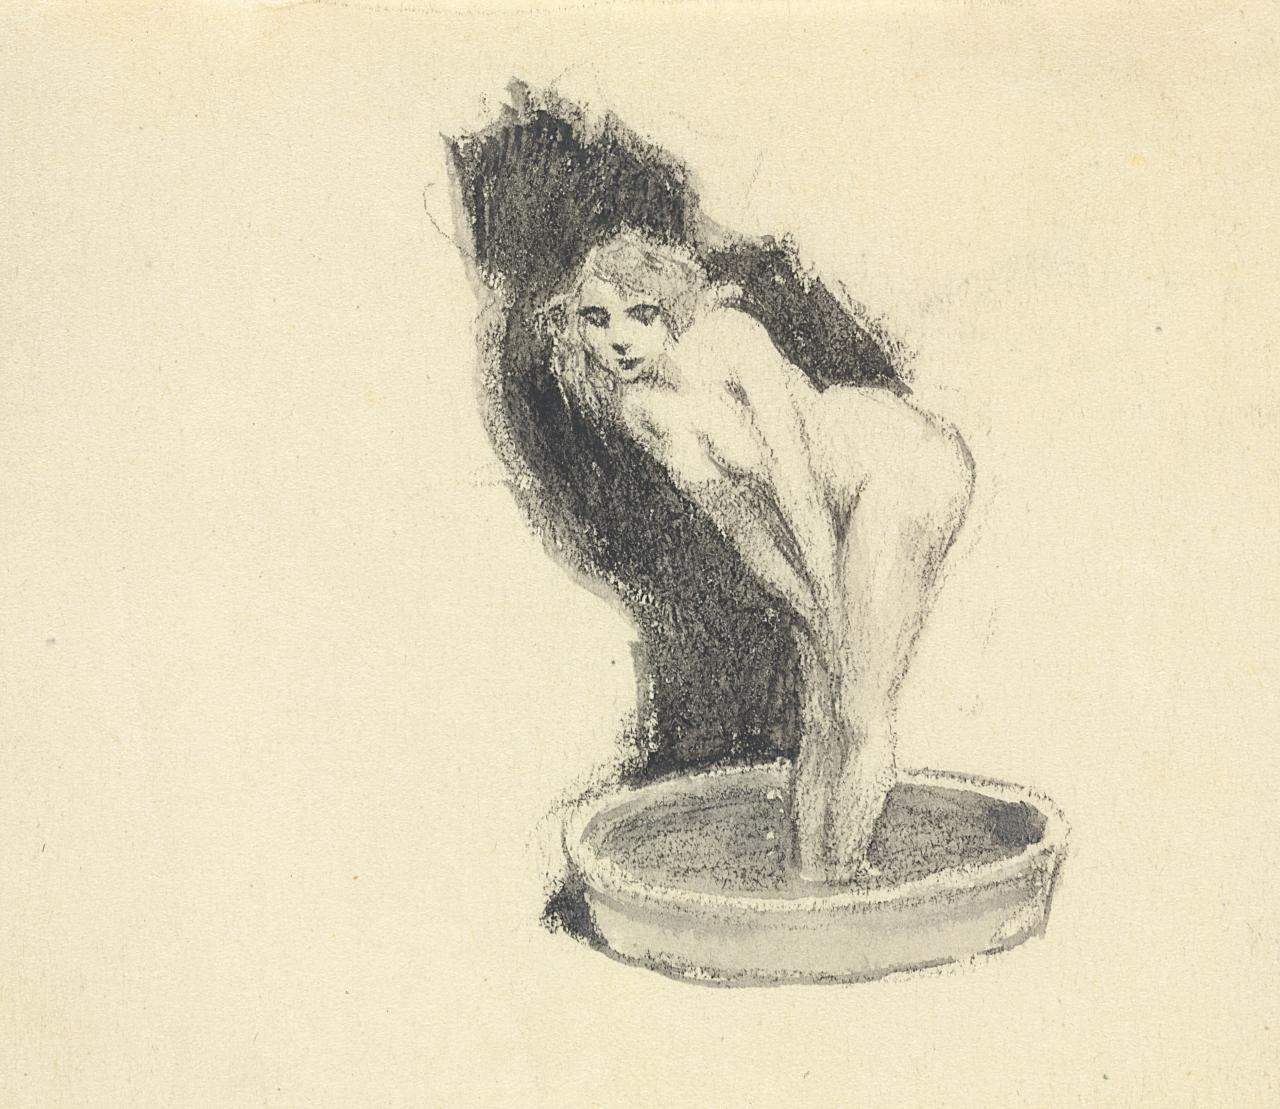 Chapter heading (Naked woman standing in tub)